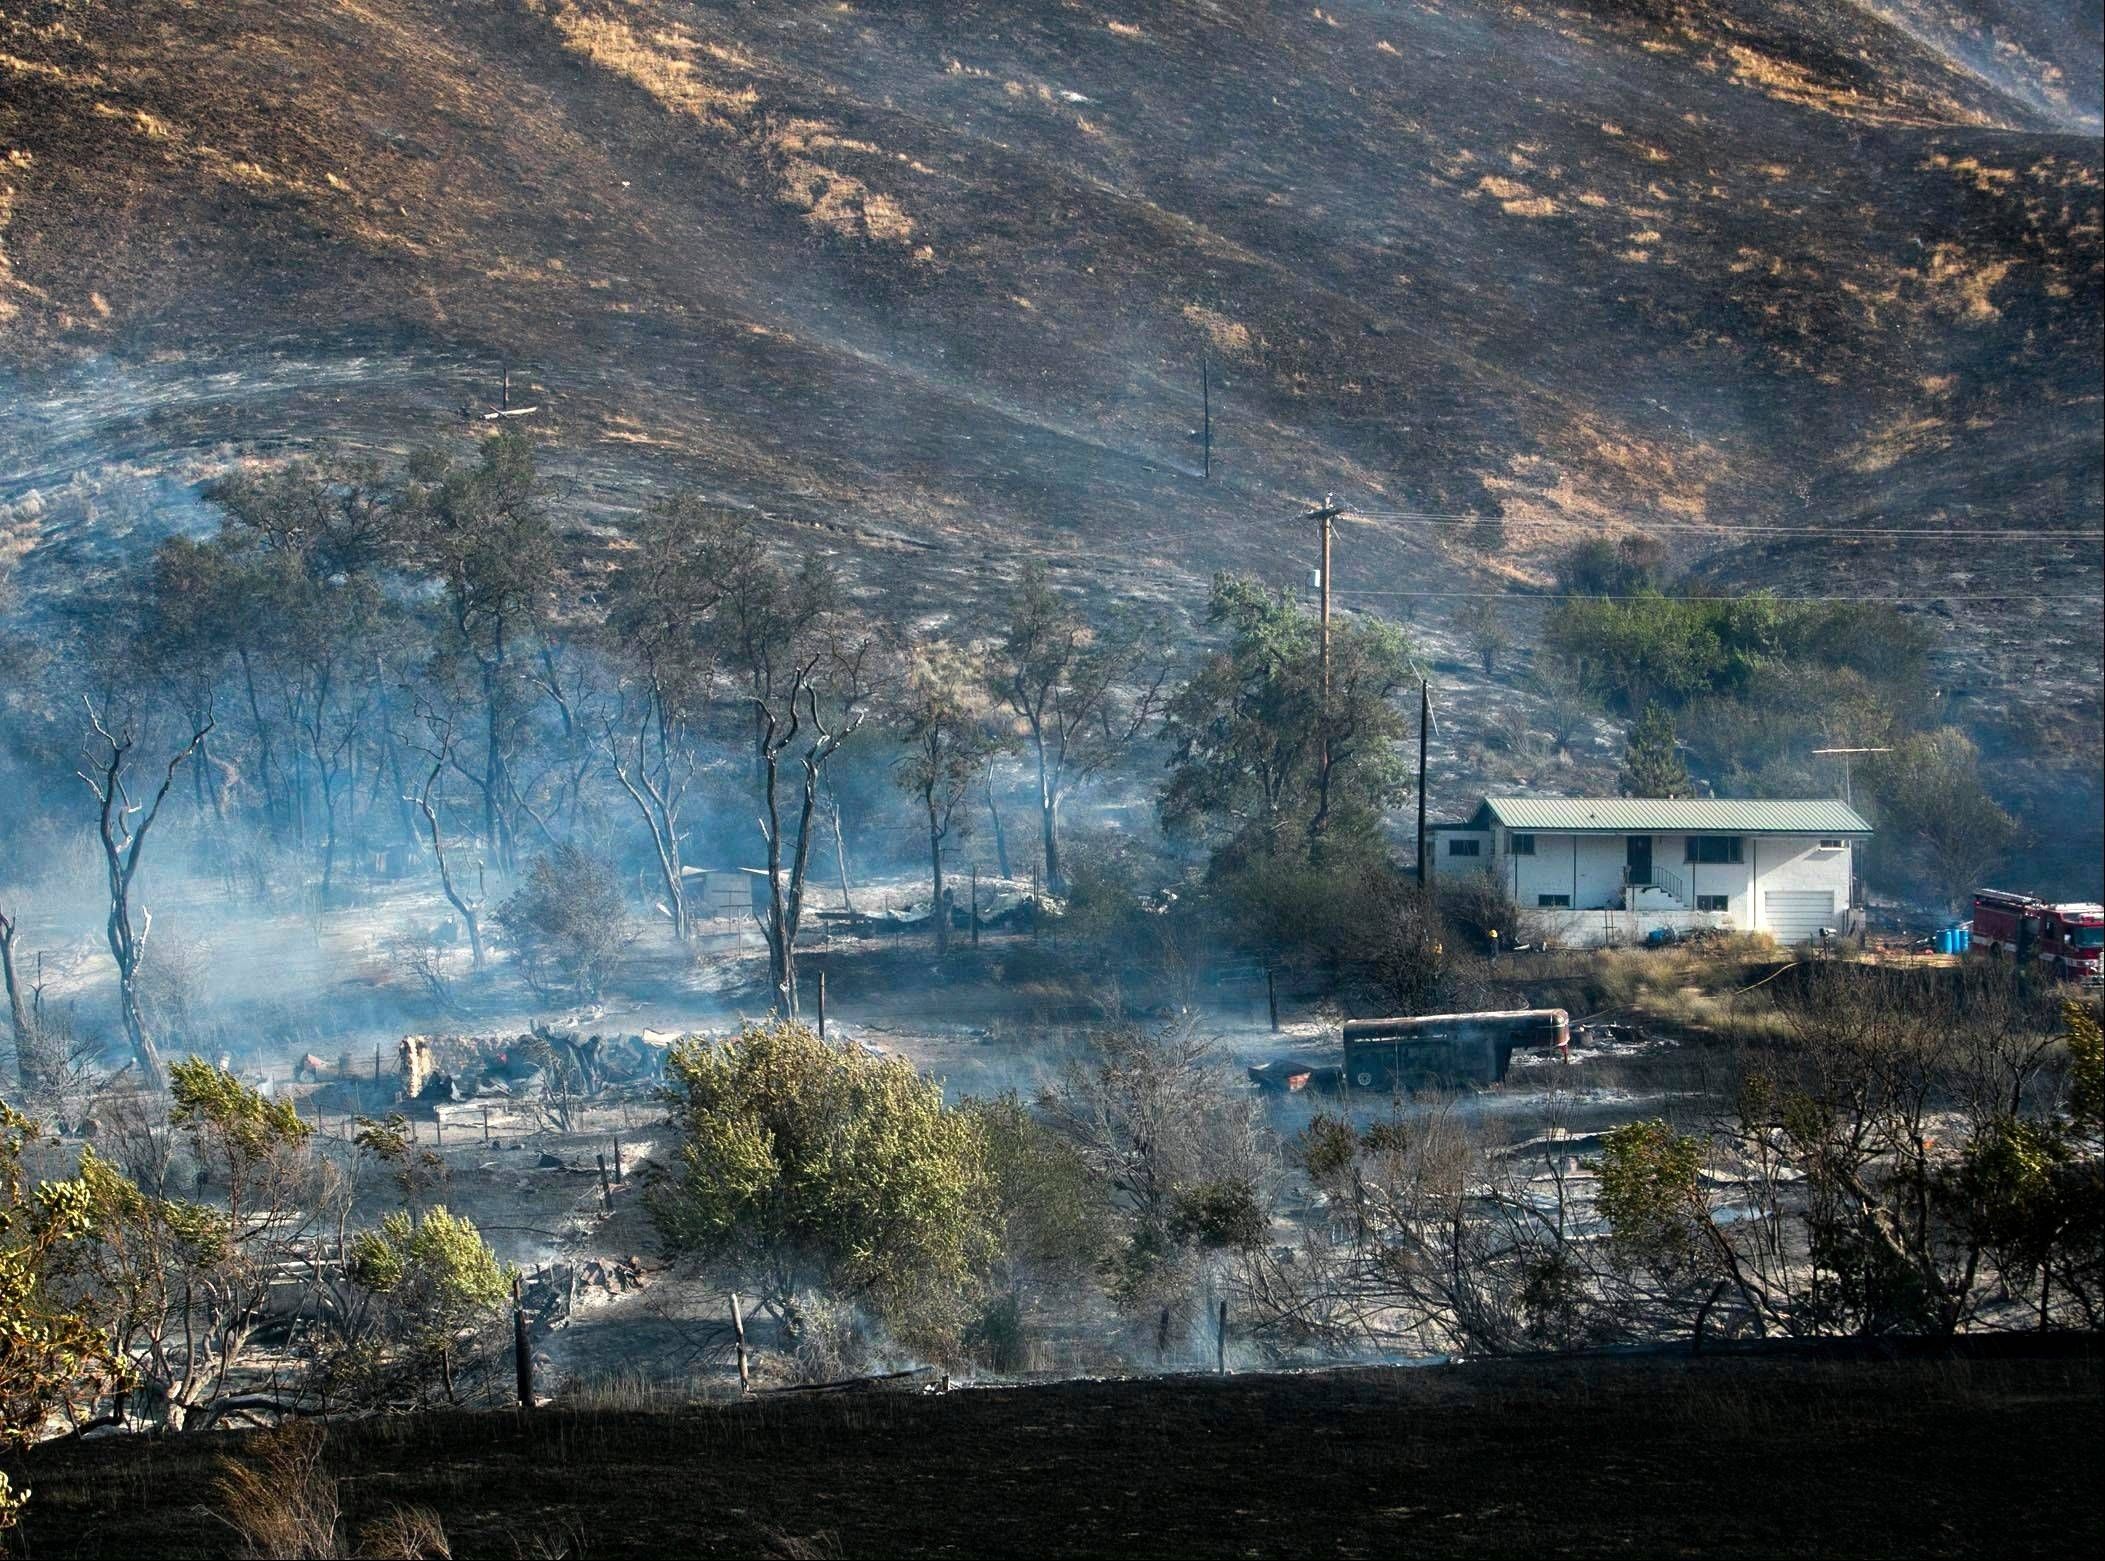 Firefighters battle a wildfire near mile marker 14 on Idaho 21 near Hilltop Cafe northeast of Boise Tuesday Aug. 20, 2013. The blaze was reported to have destroyed two structures. Firefighting efforts saved a home that was clearly surrounded by charred ground.